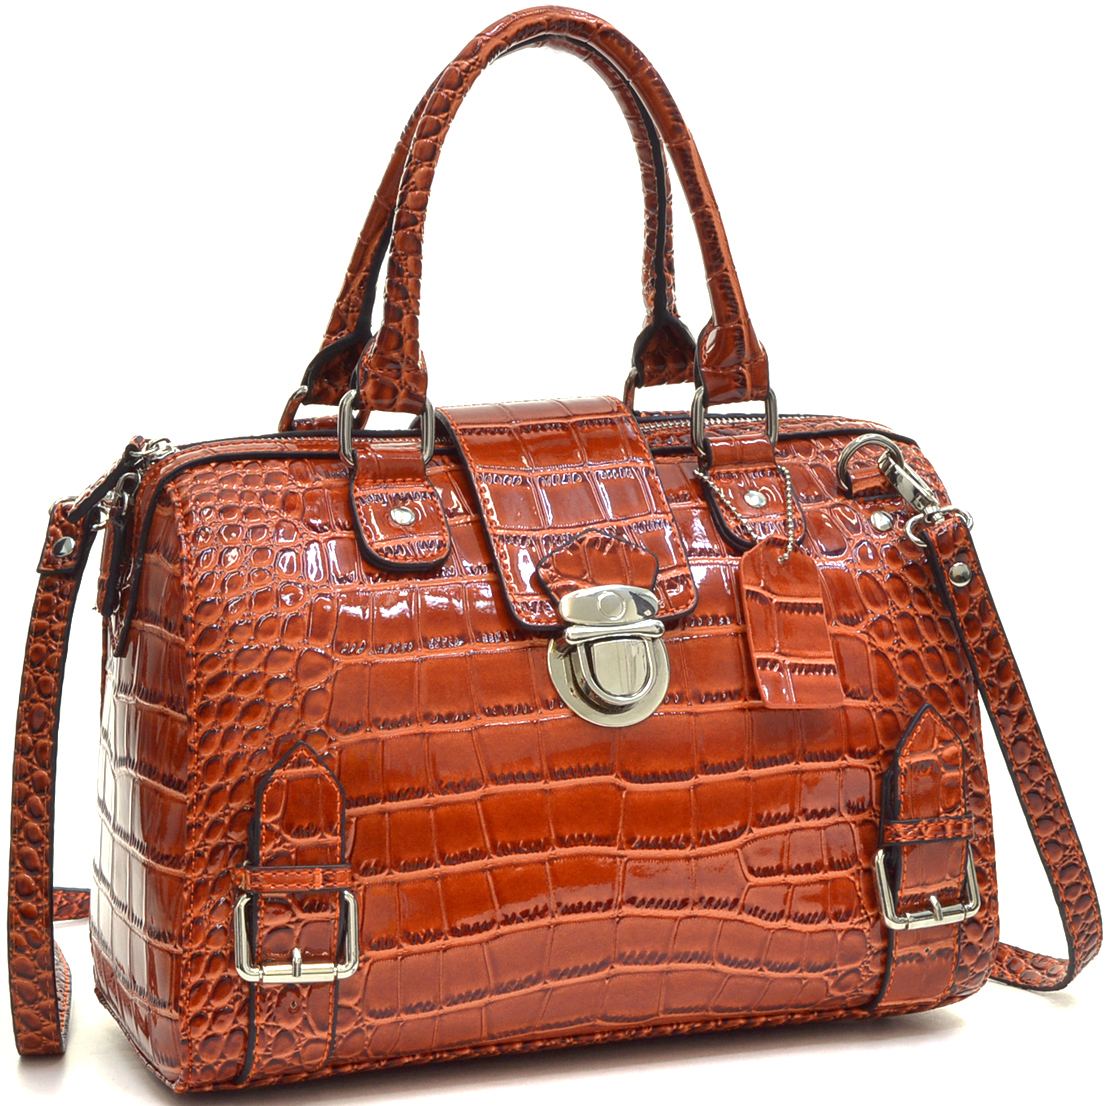 Dasein® Patent Barrel Body Satchel with Shoulder Strap